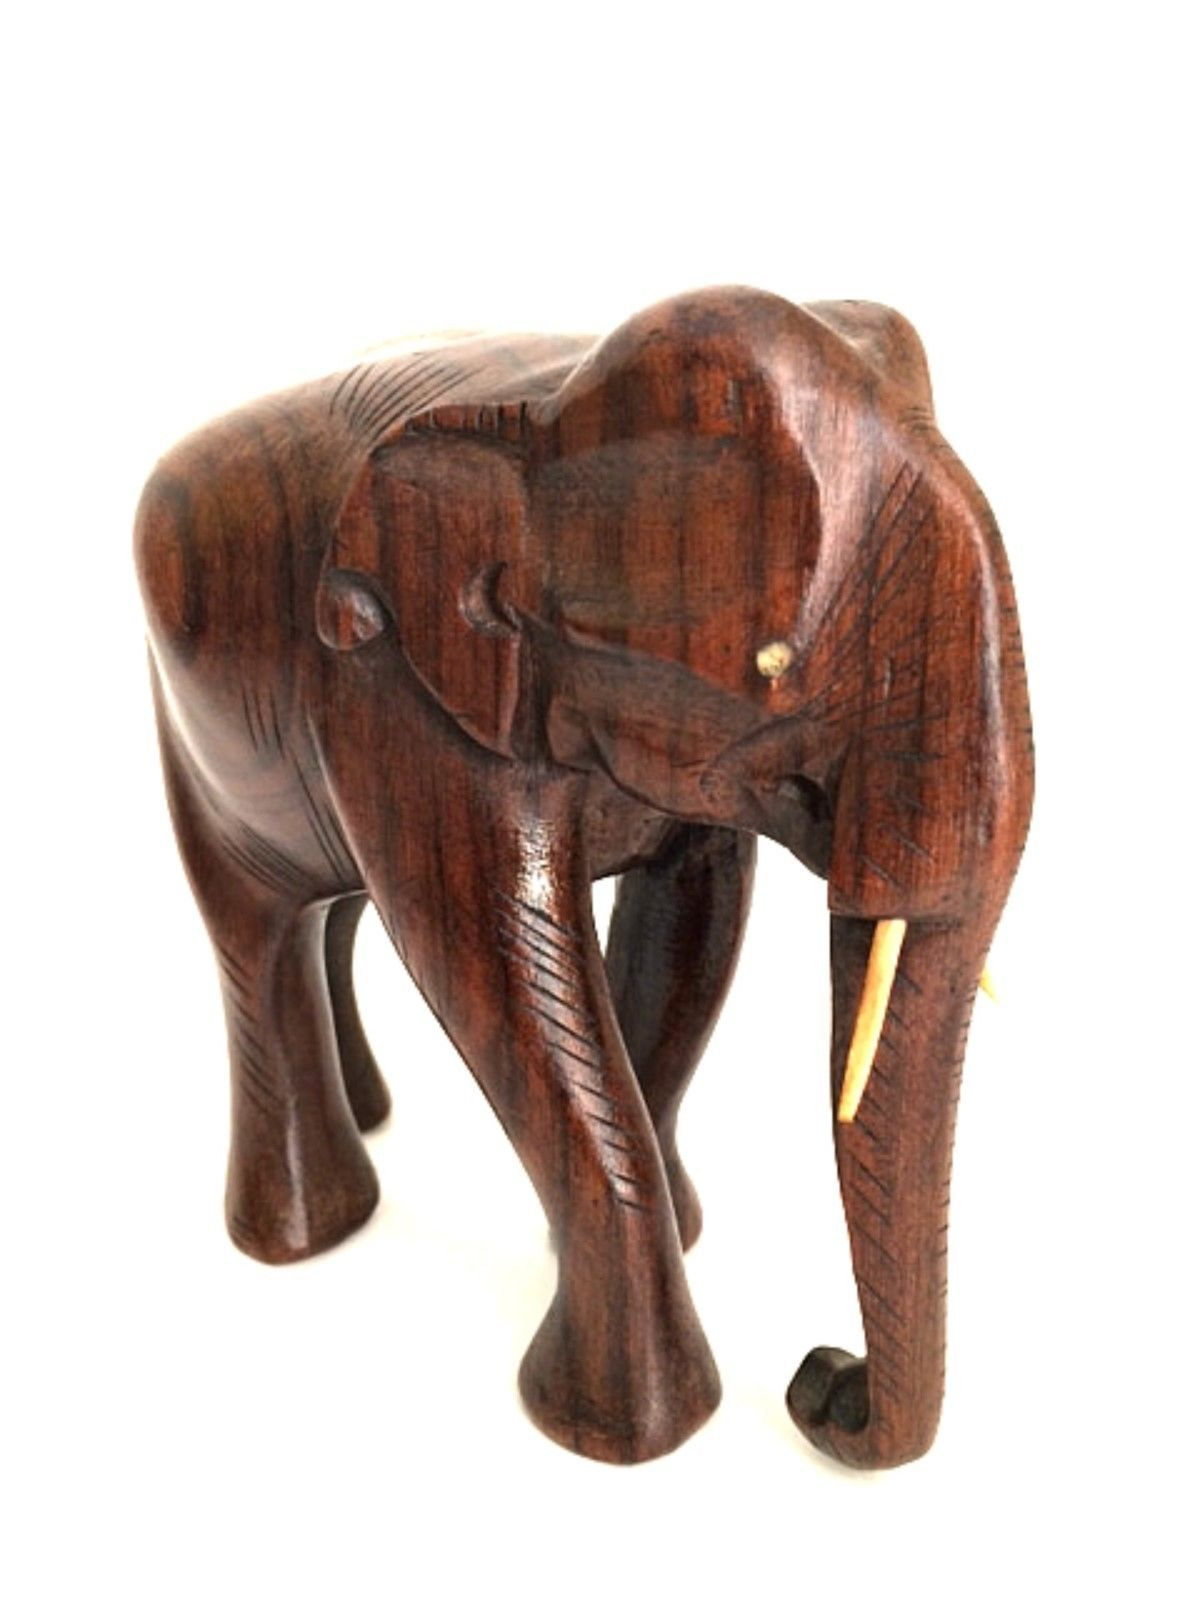 wooden elephant hand carved figurine trunk down 5 x 6 inches figurines. Black Bedroom Furniture Sets. Home Design Ideas